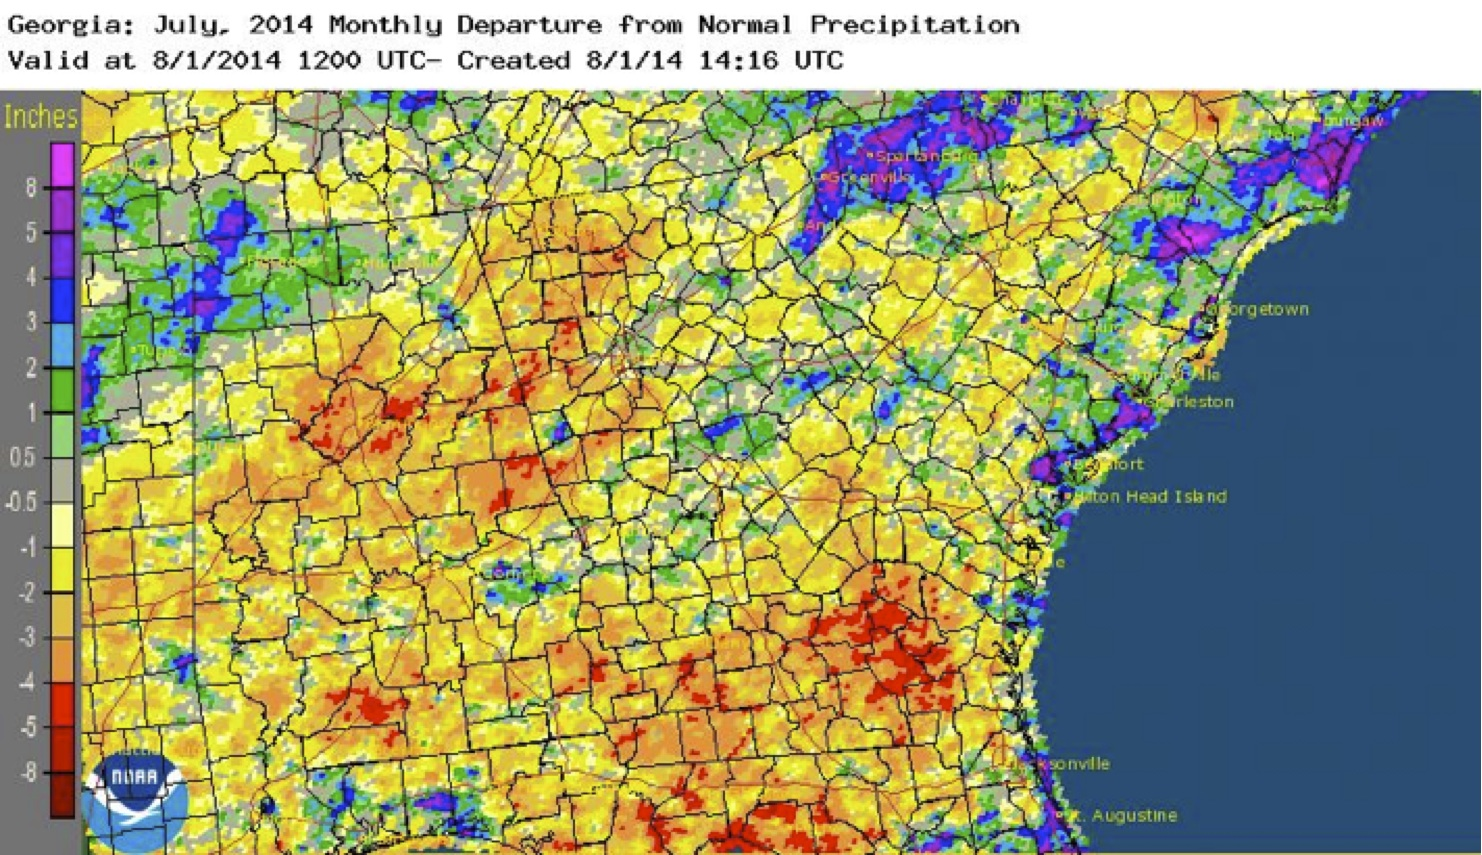 July 2014 Monthly departure from normal precipitation.